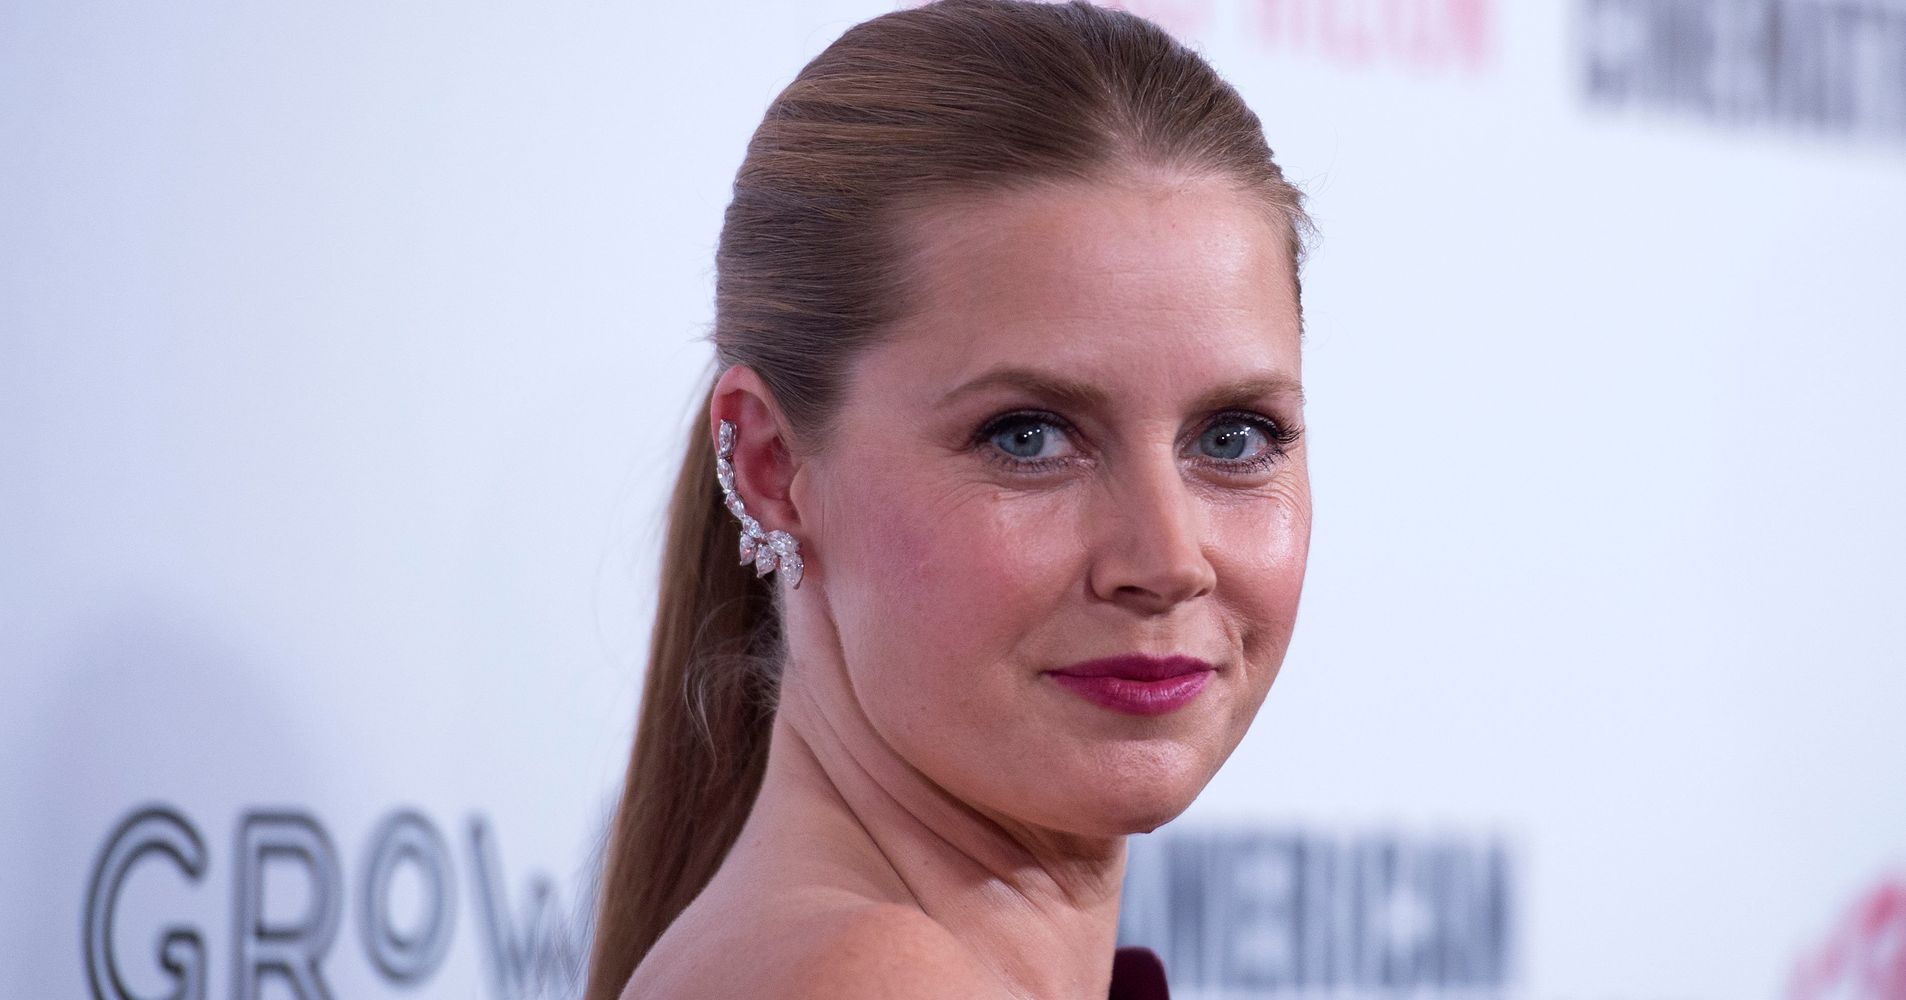 Amy Adams Stood Up To Make Sure Her Stand-In Was Respected On Set